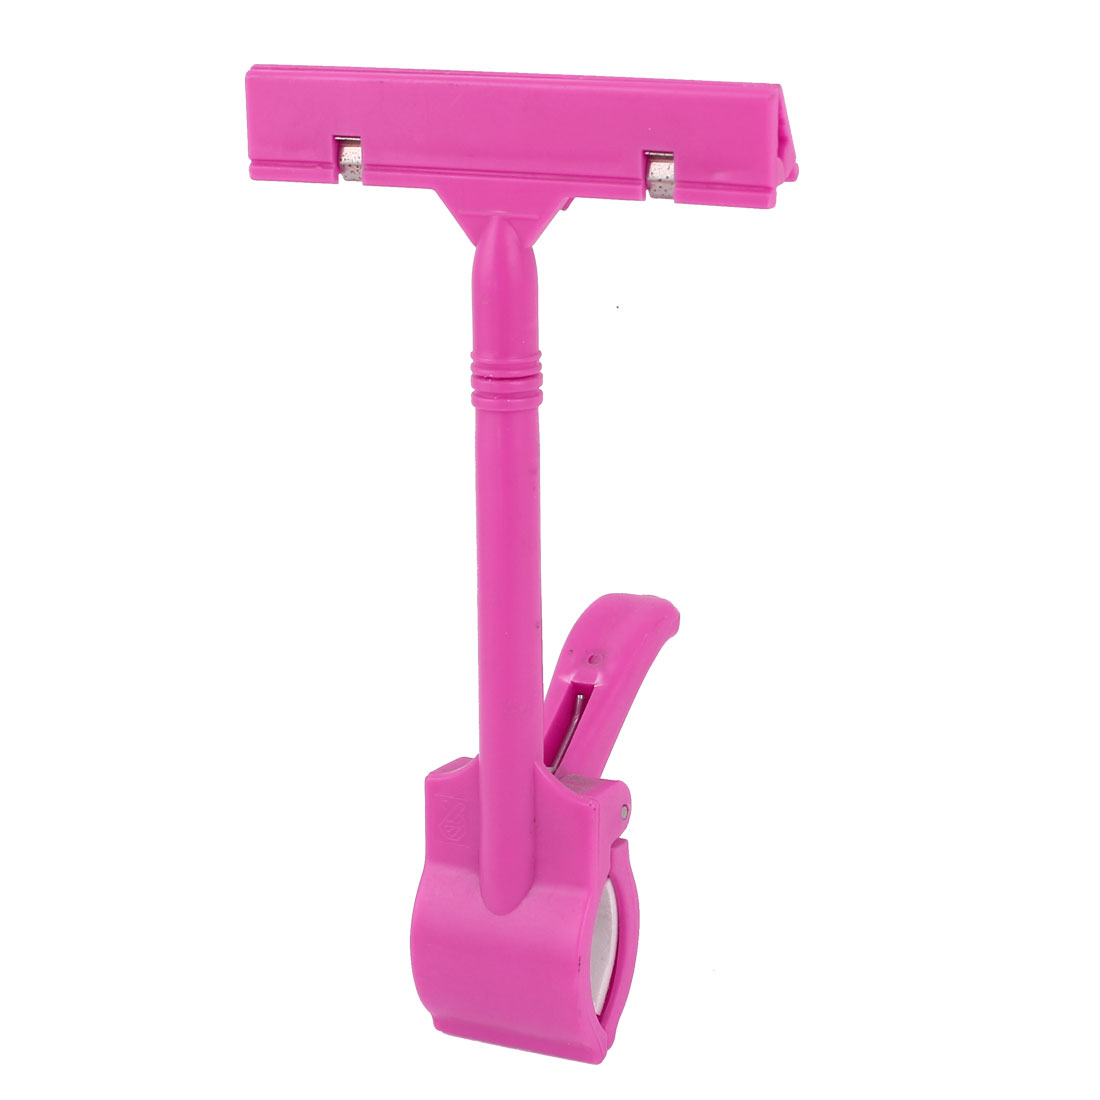 Retail Store Shop Plastic Dual End Rotatable Advertising Clip On Pop Sign Price Card Ticket Clamp Holder Fuchsia